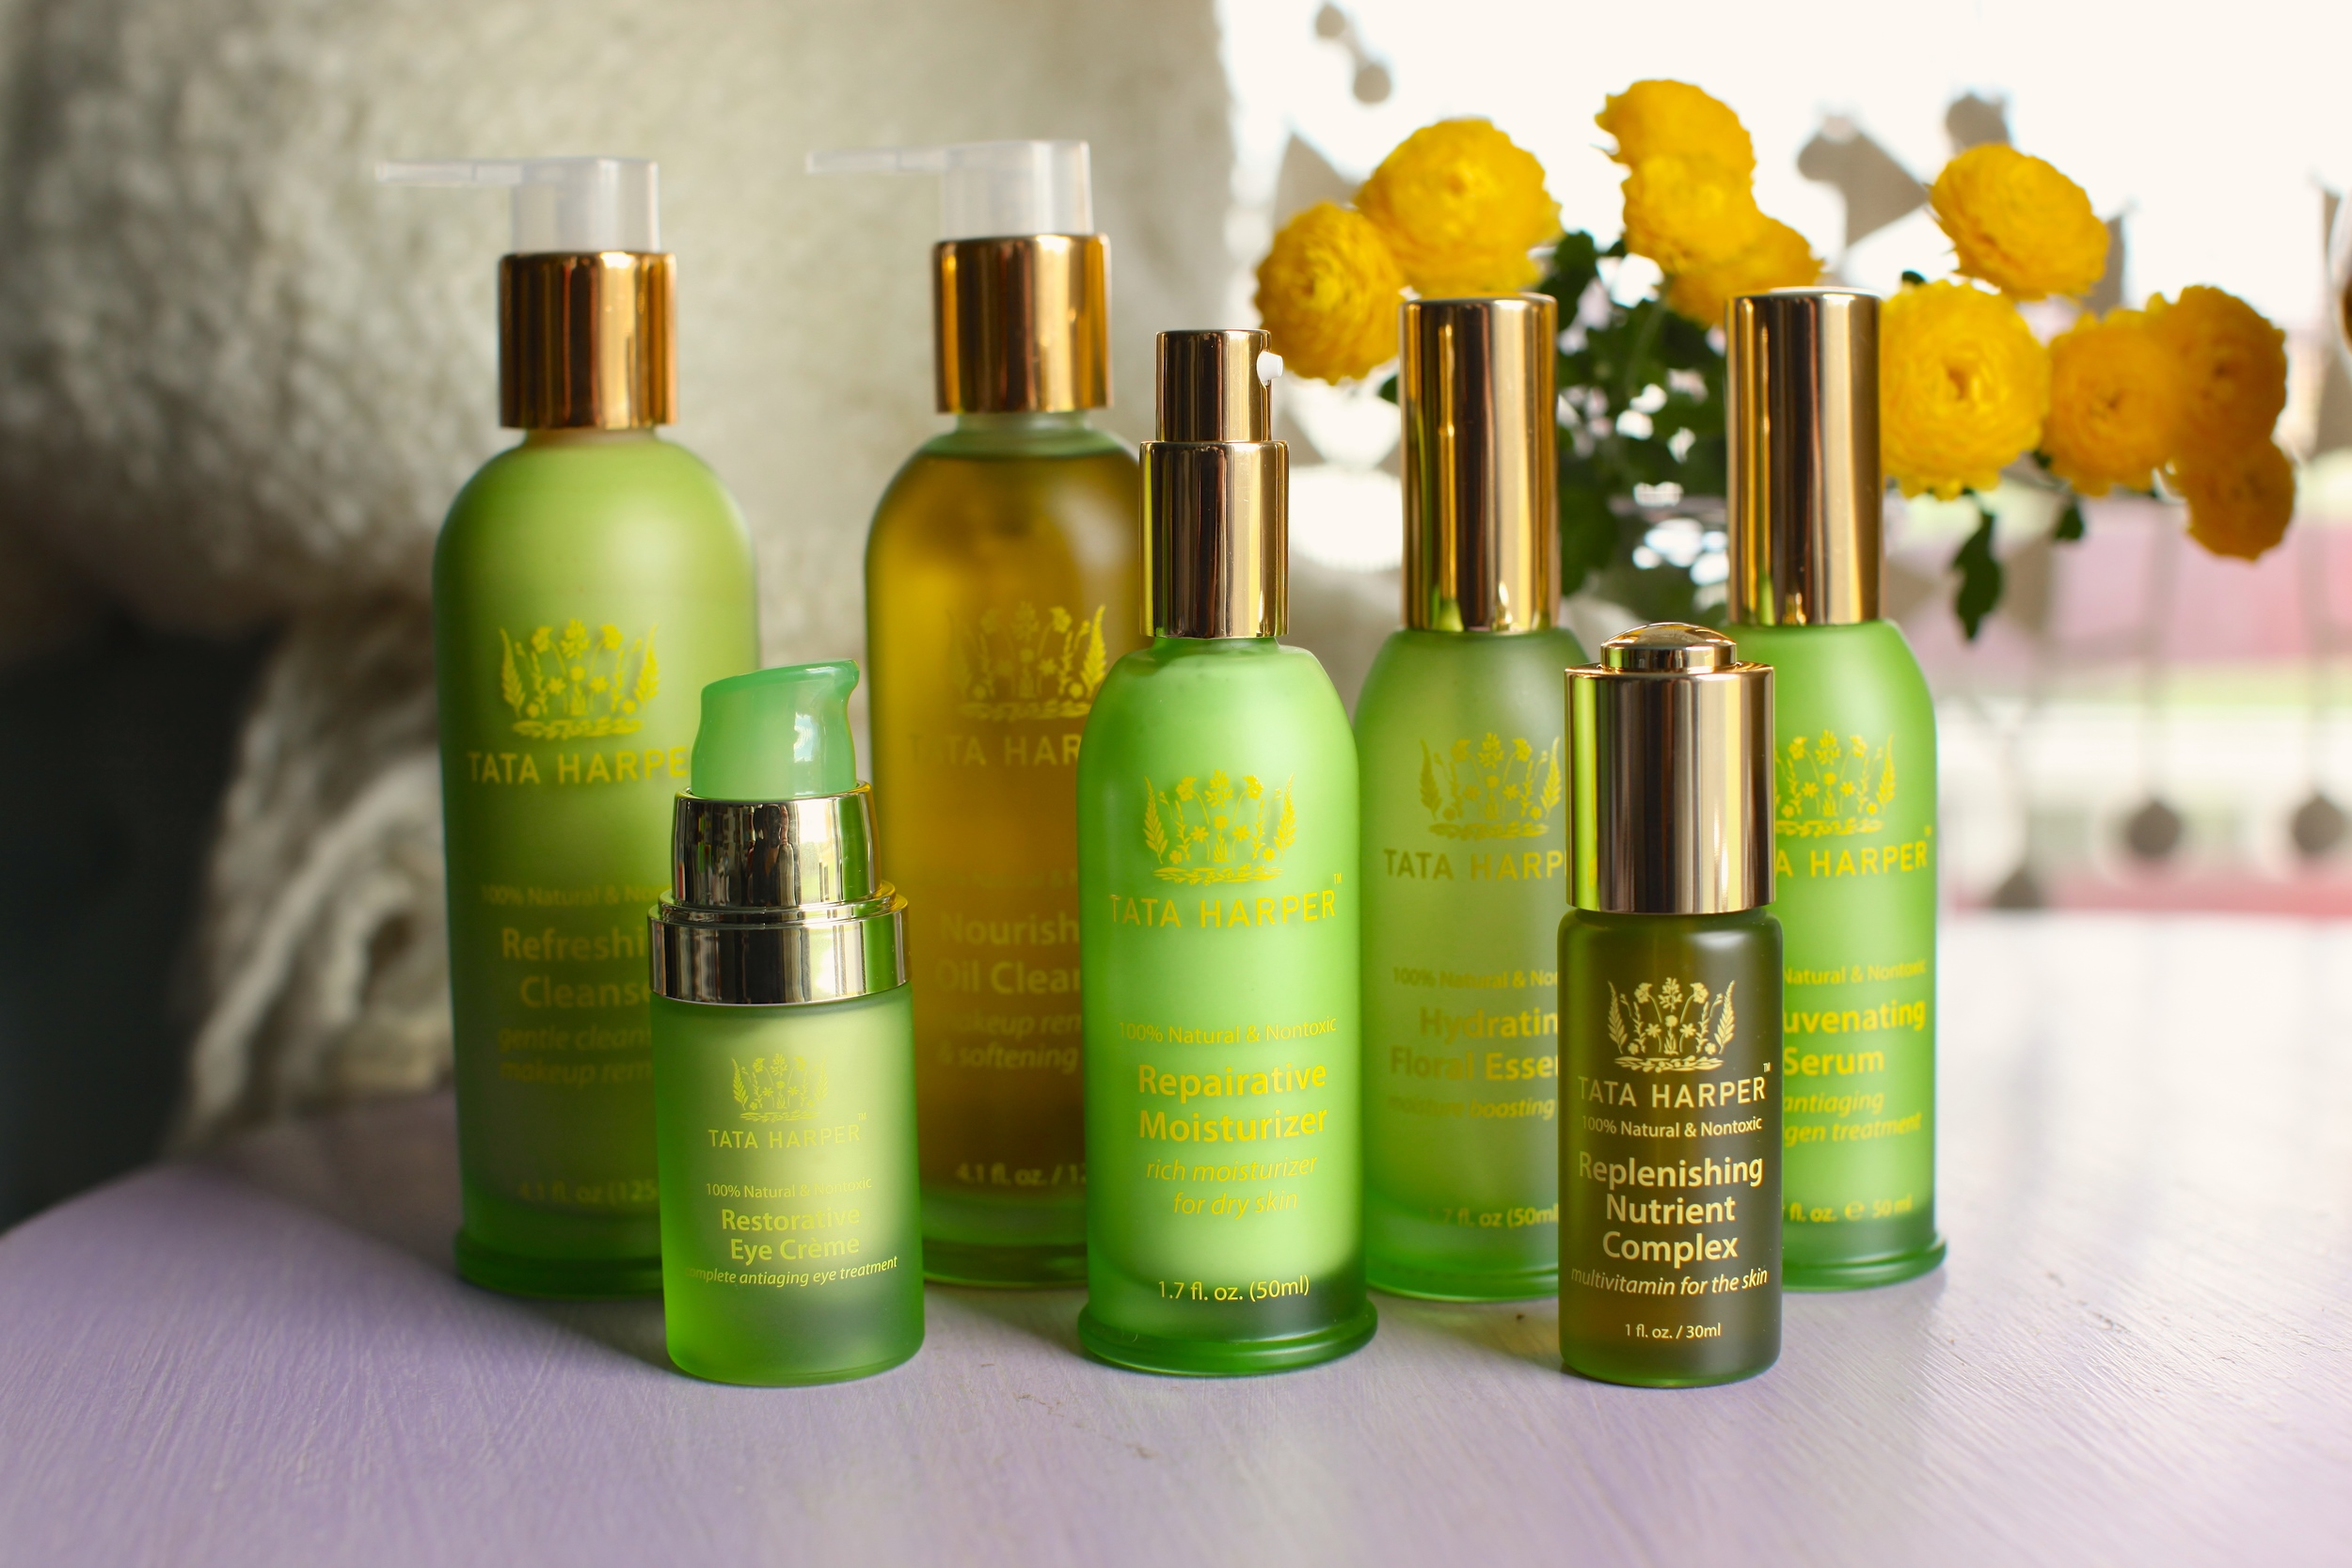 One of my favourite natural skincare brands is Tata Harper. Image Source: www.tataharperskincare.com